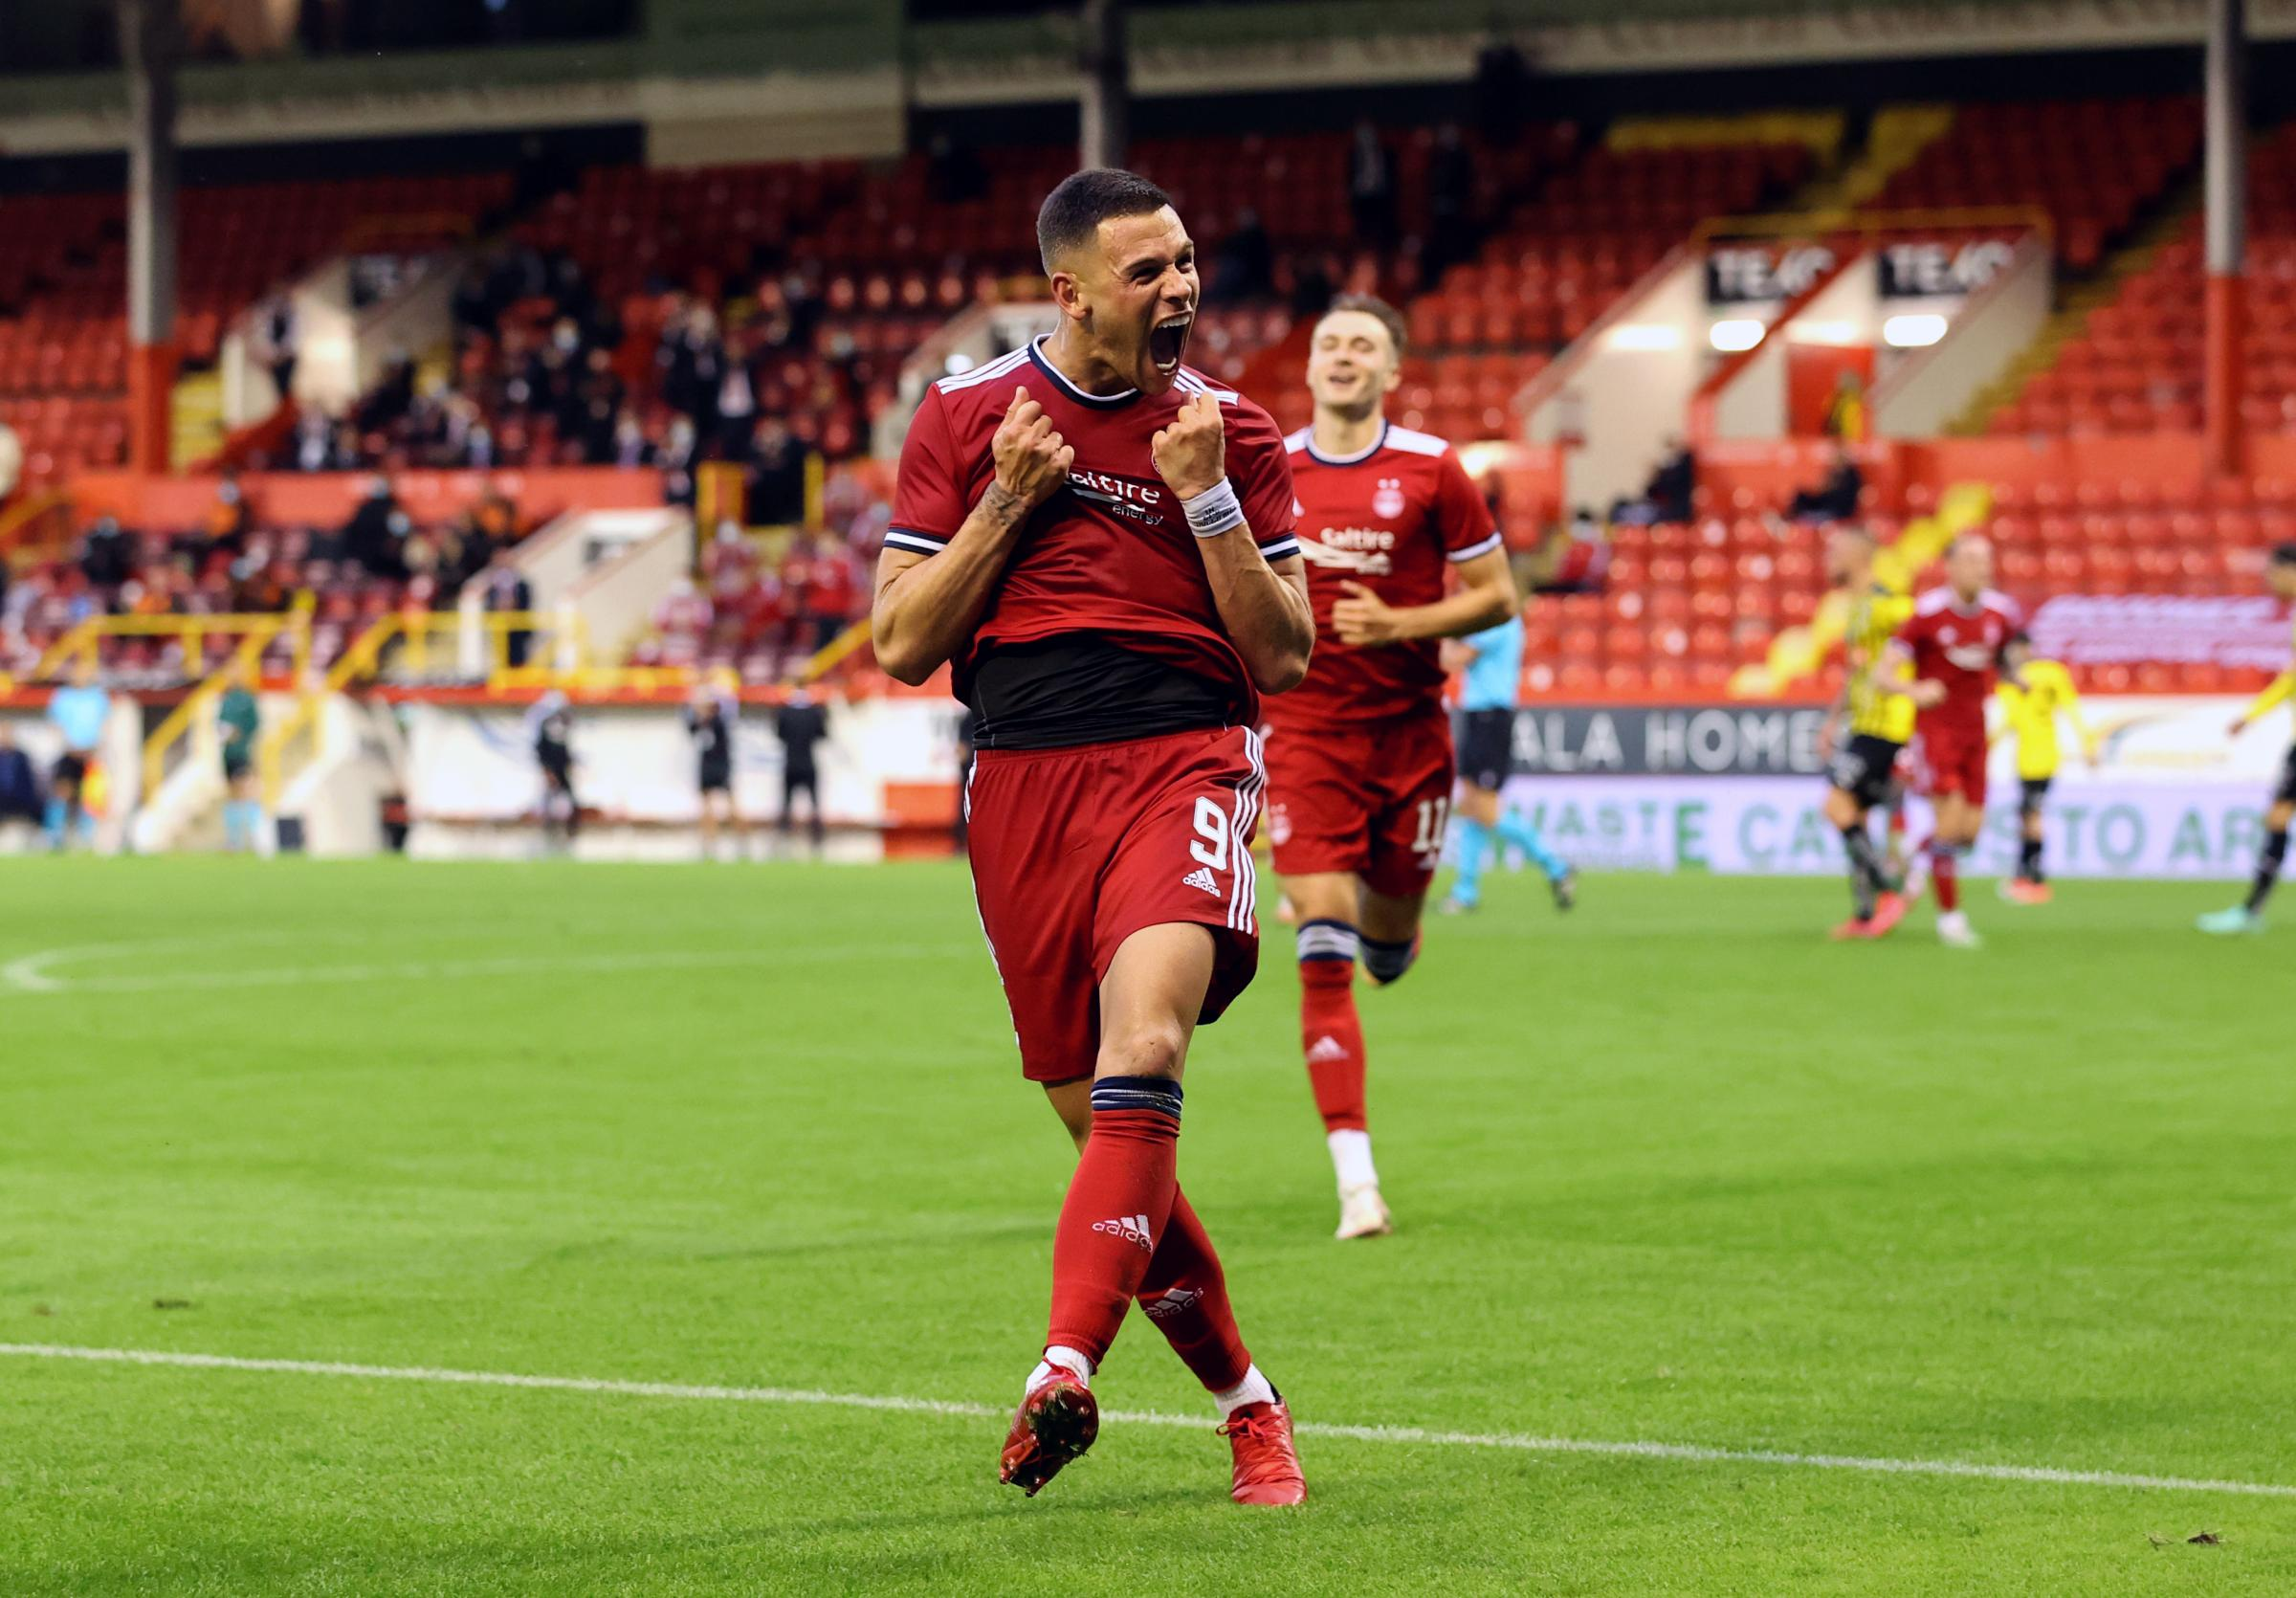 Aberdeen striker Christian Ramirez hoping to force his way into USA national team squad